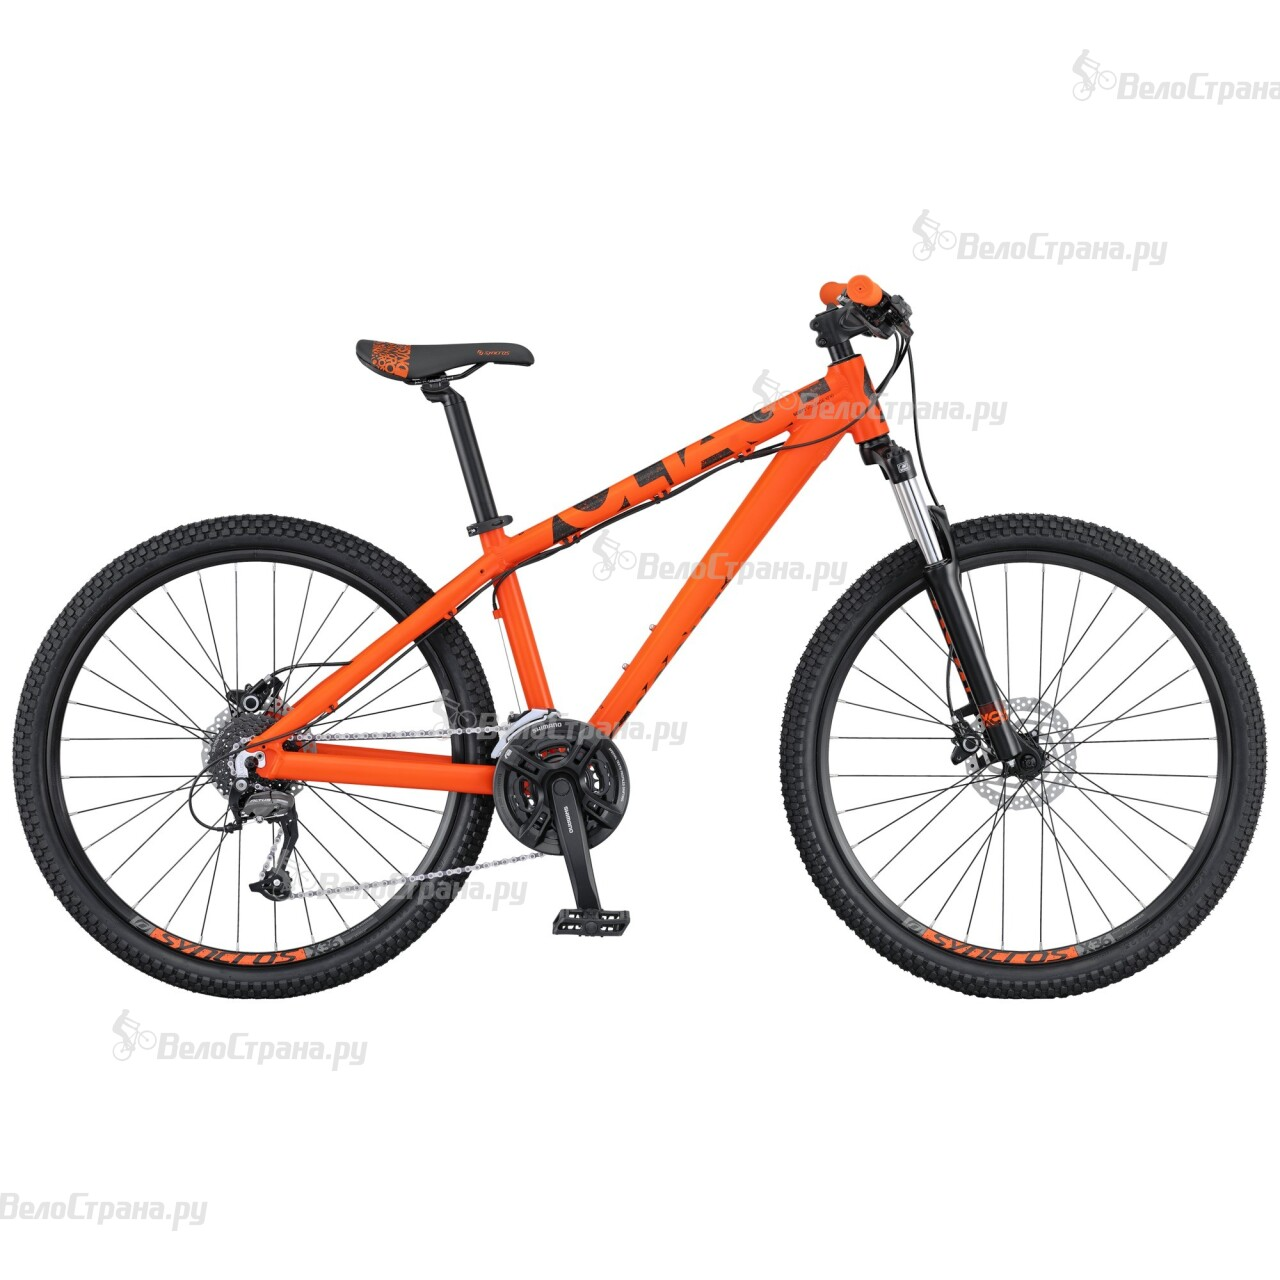 Велосипед Scott Voltage YZ 10 (2016) велосипед scott voltage yz 20 2014